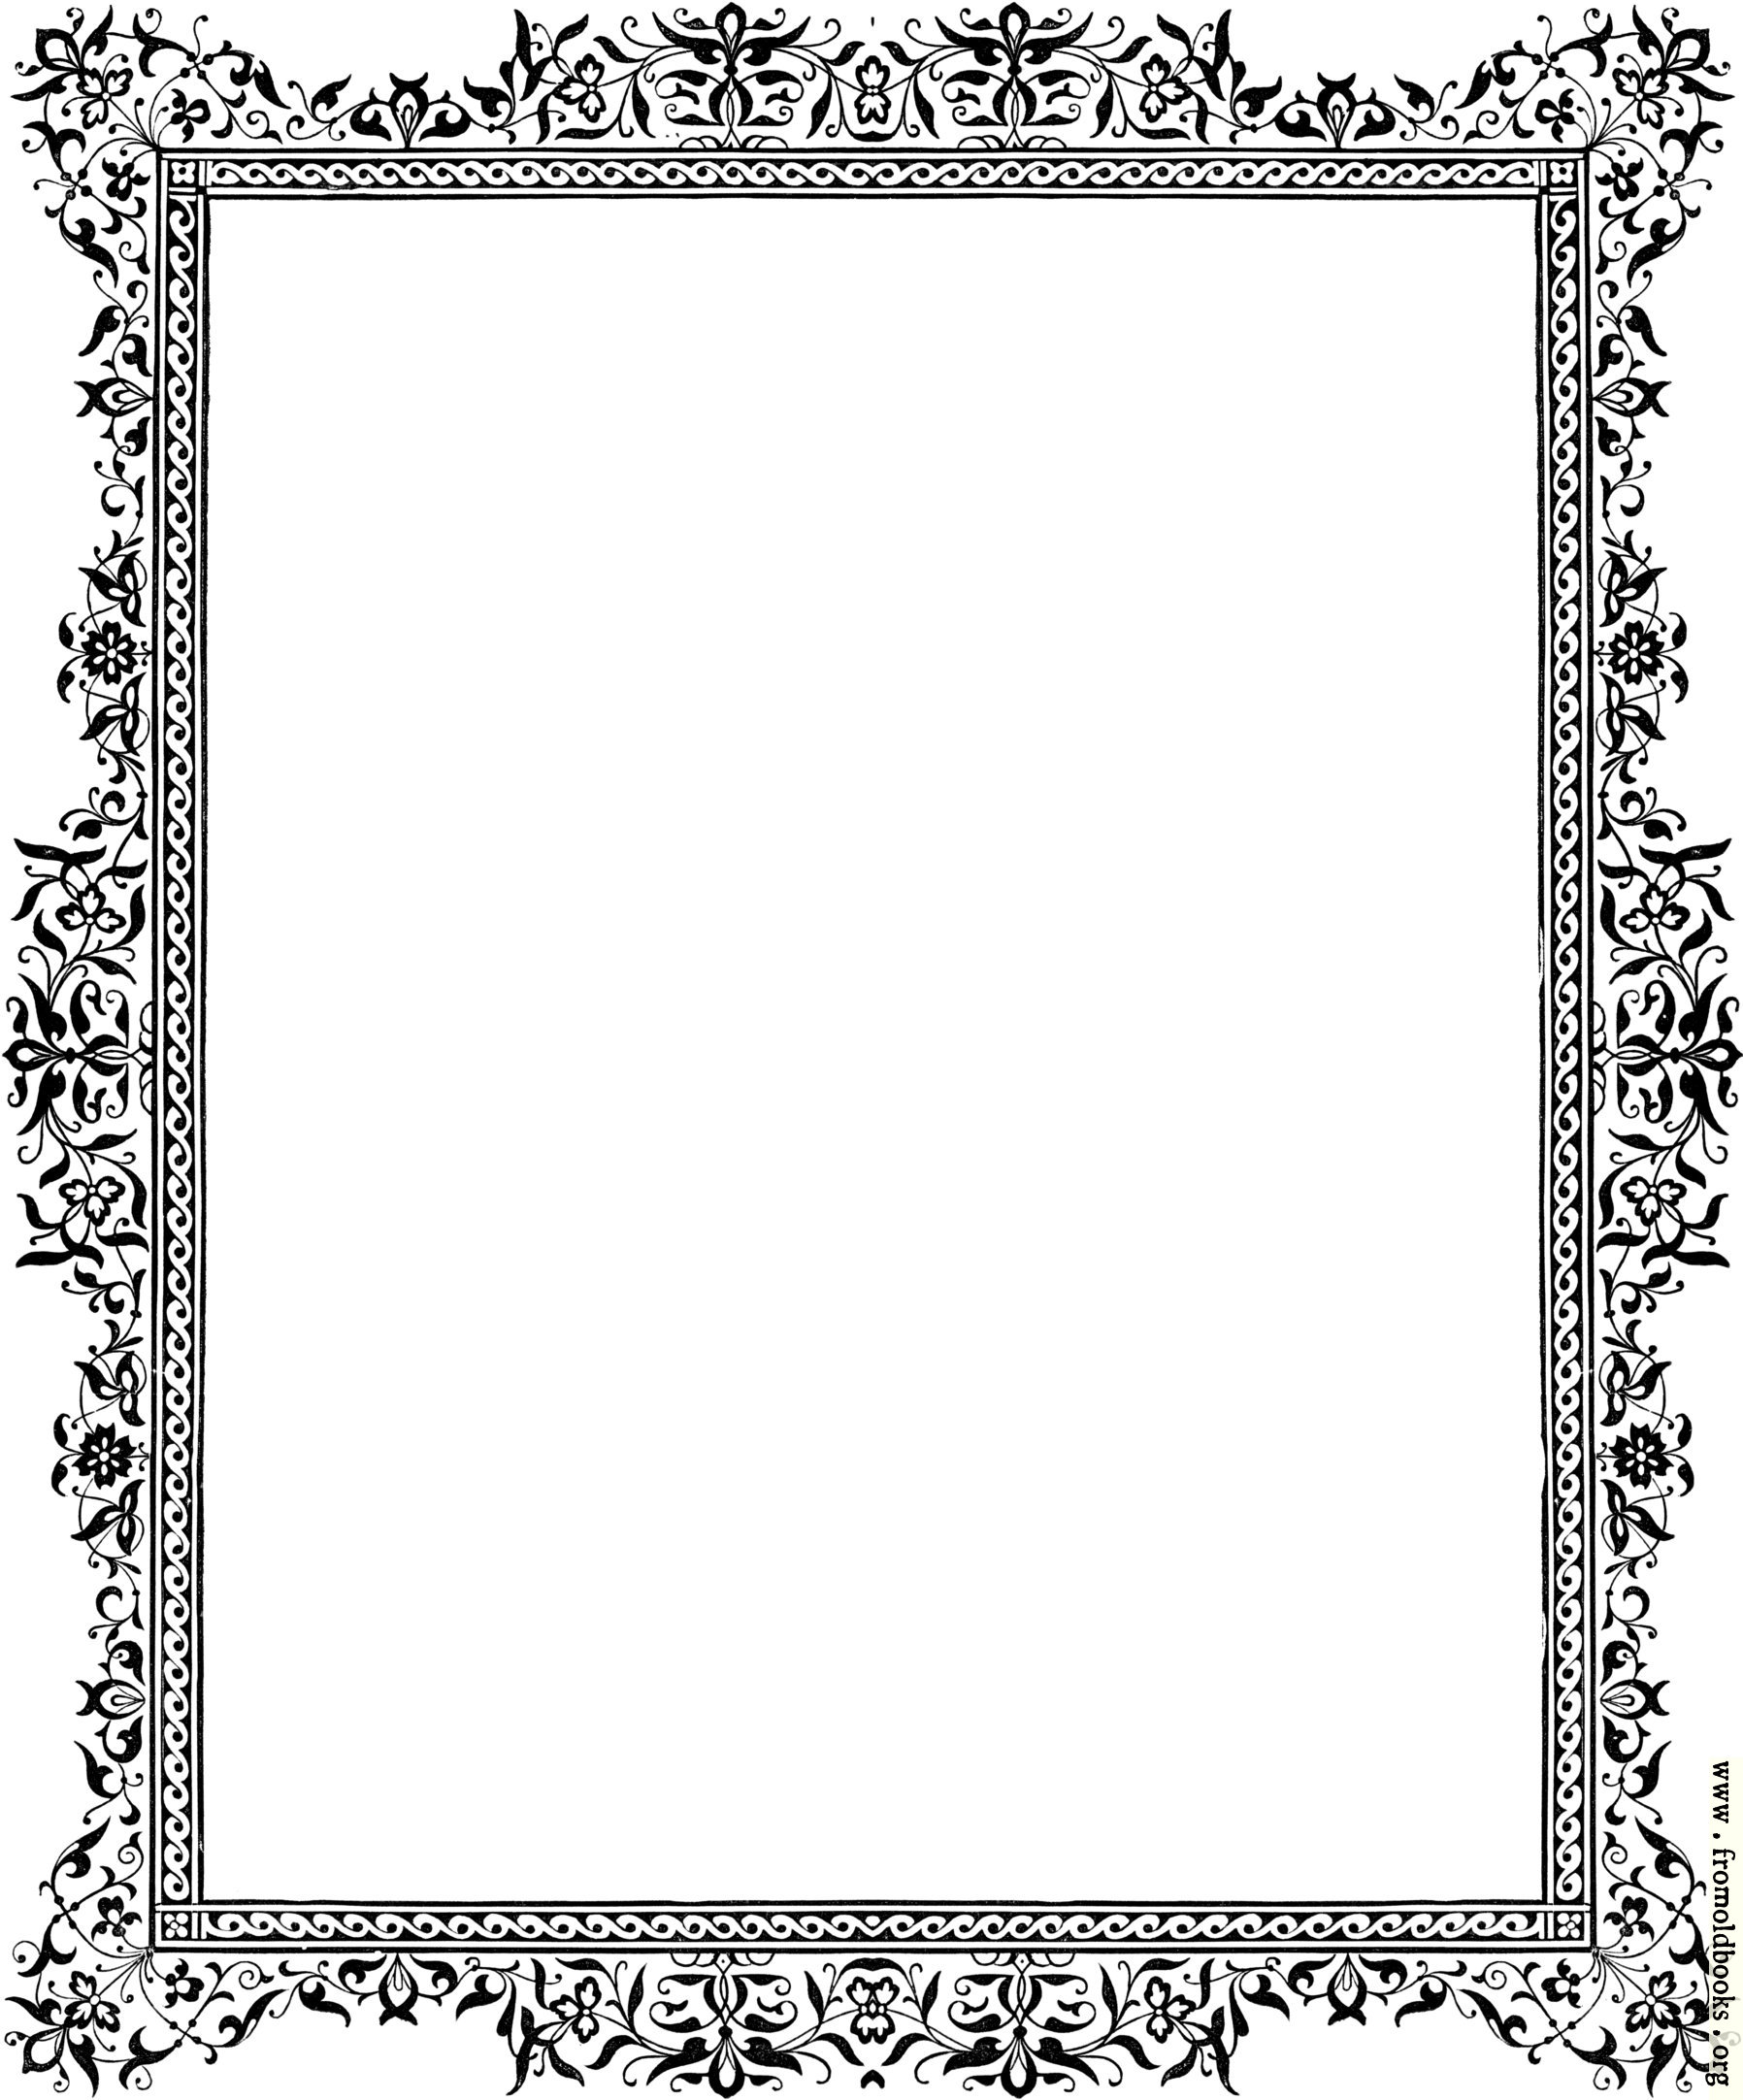 Decorative clip art victorian border black and white details